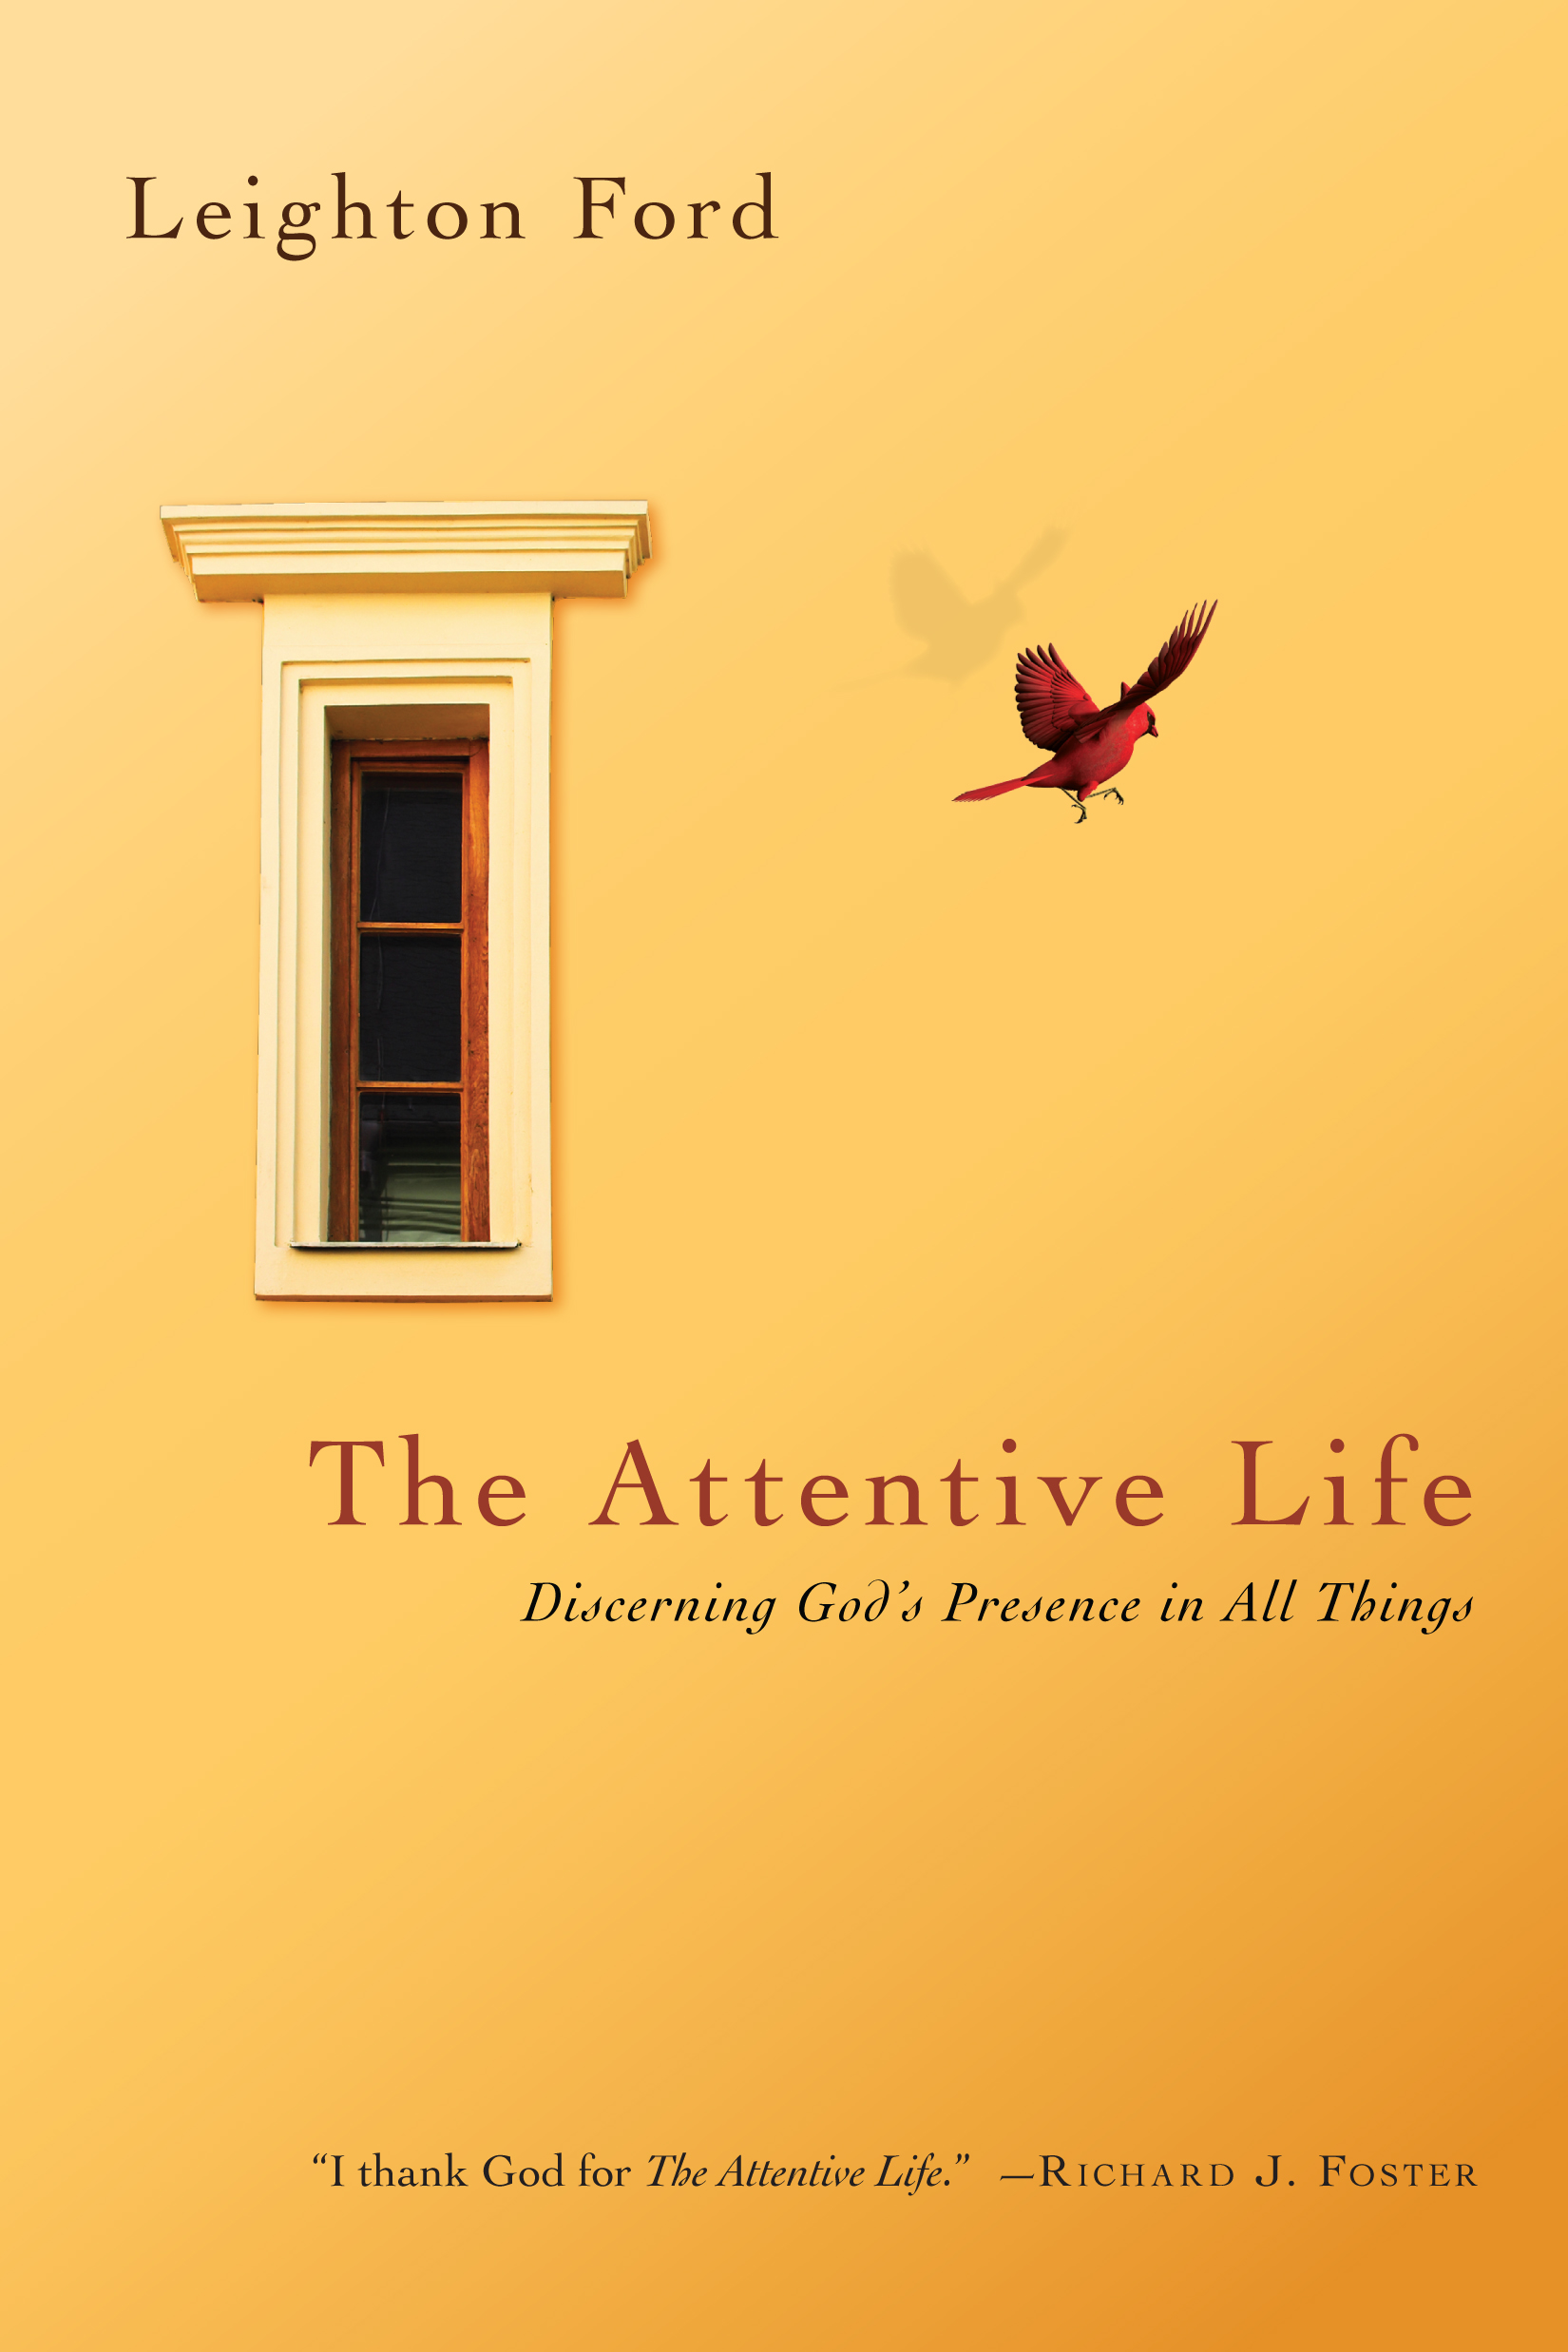 The Attentive Life Discerning God's Presence in All Things